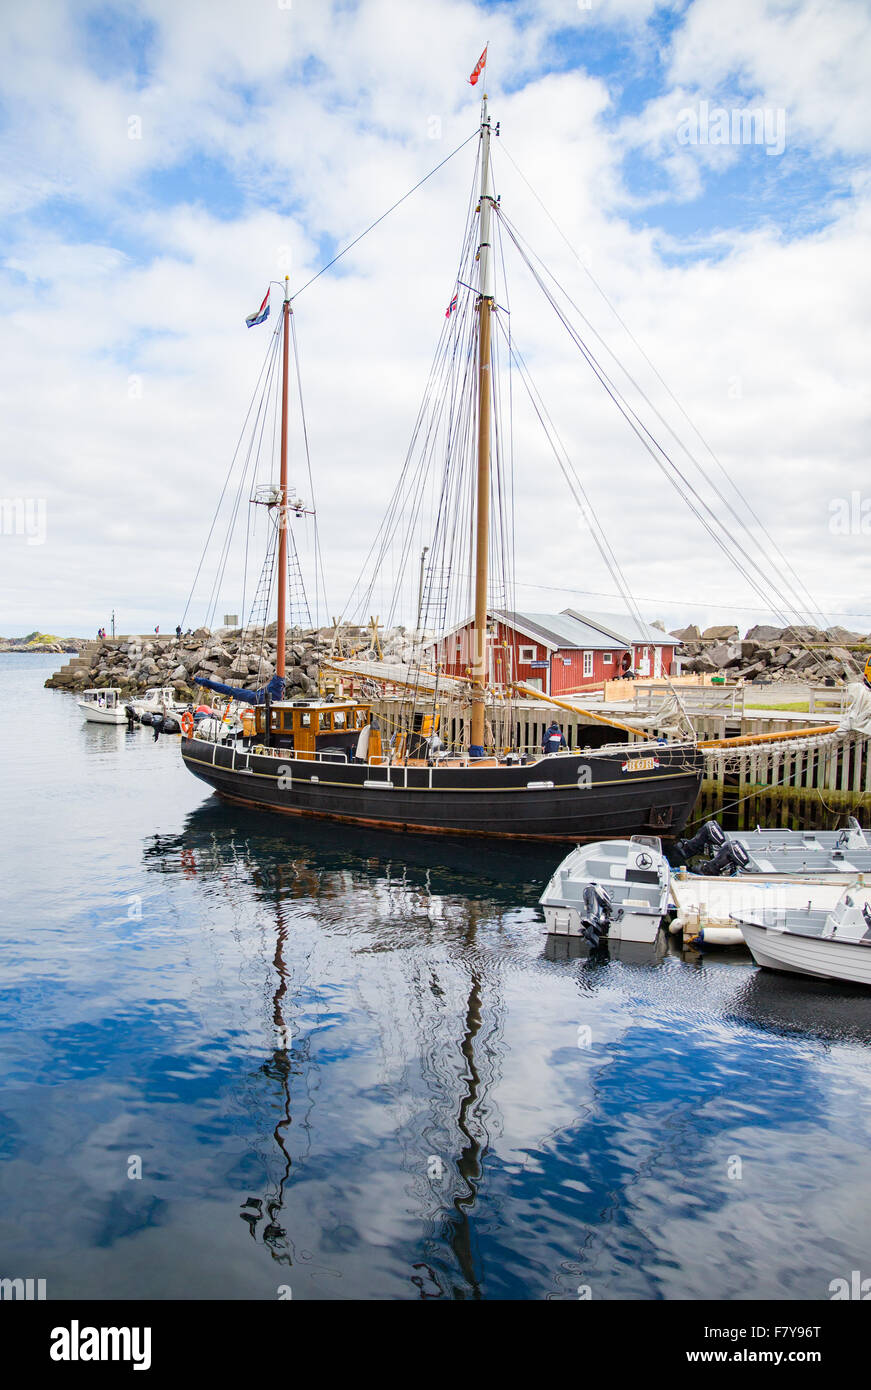 Small two masted ketch sailing vessel moored in the harbour at ' A ' in the Western Lofoten Islands of Norway - Stock Image